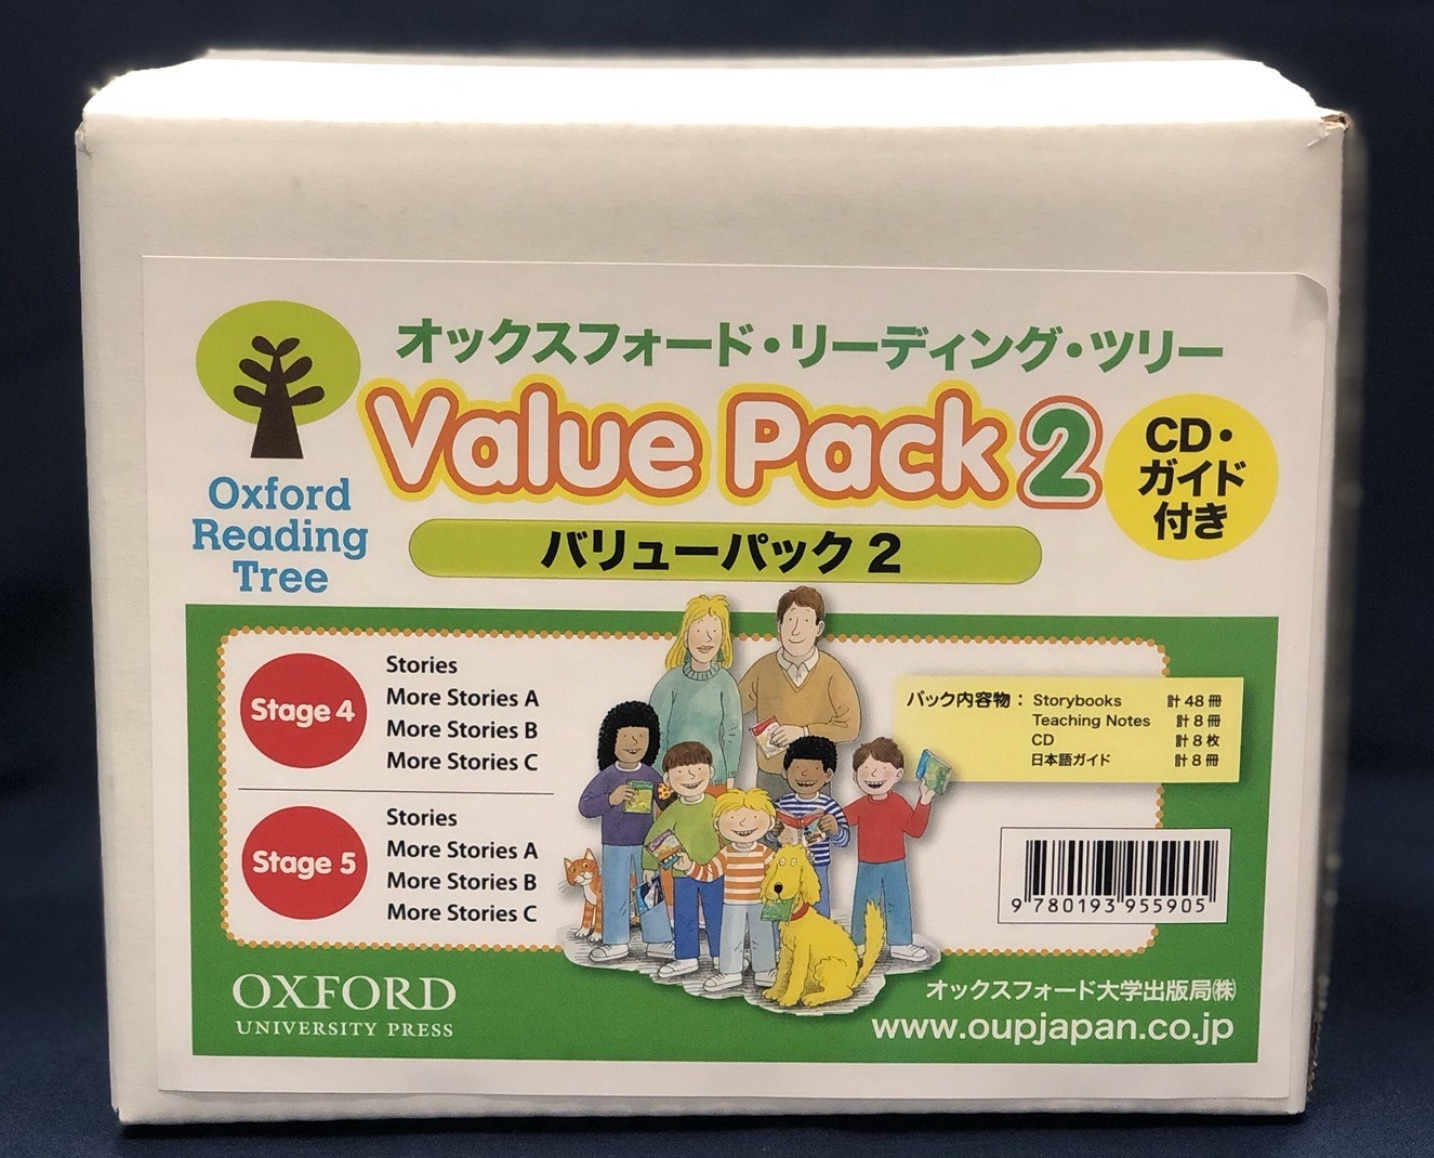 Oxford Reading Tree: Trunk Packs, Value Packs, Tadoku Pack